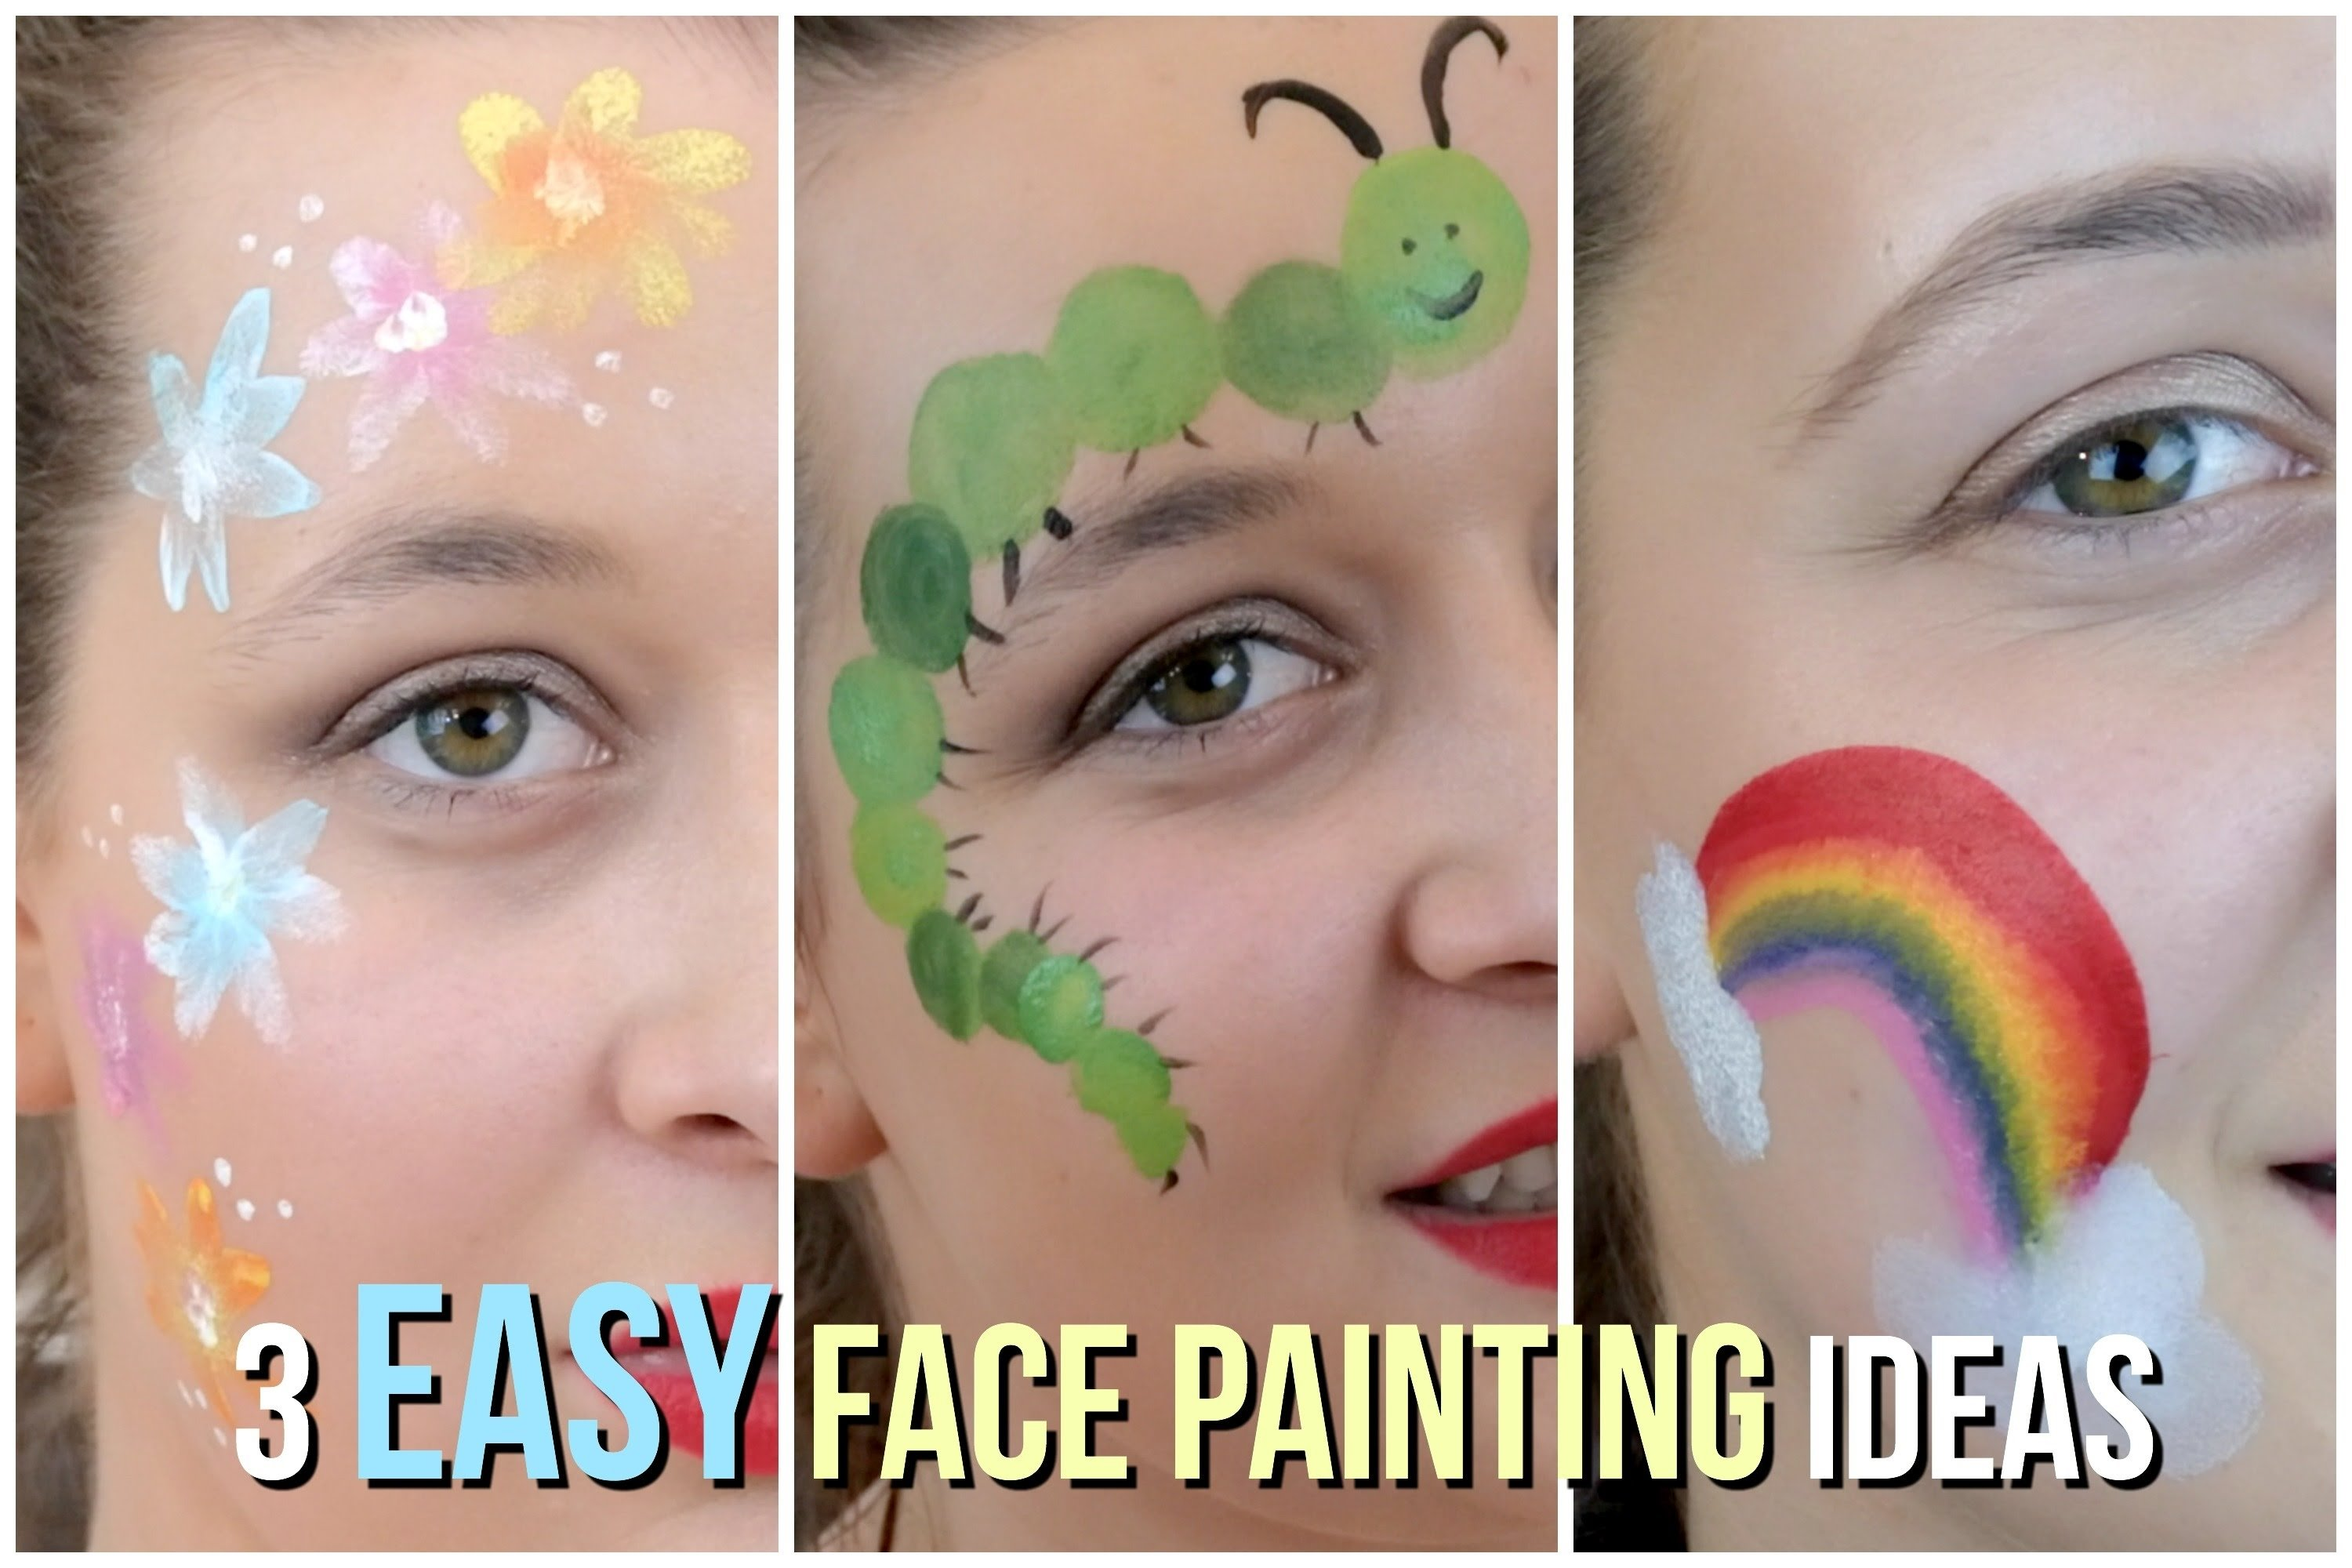 10 Attractive Face Painting Ideas For Kids 3 easy face painting ideas that your kids will love youtube 1 2020